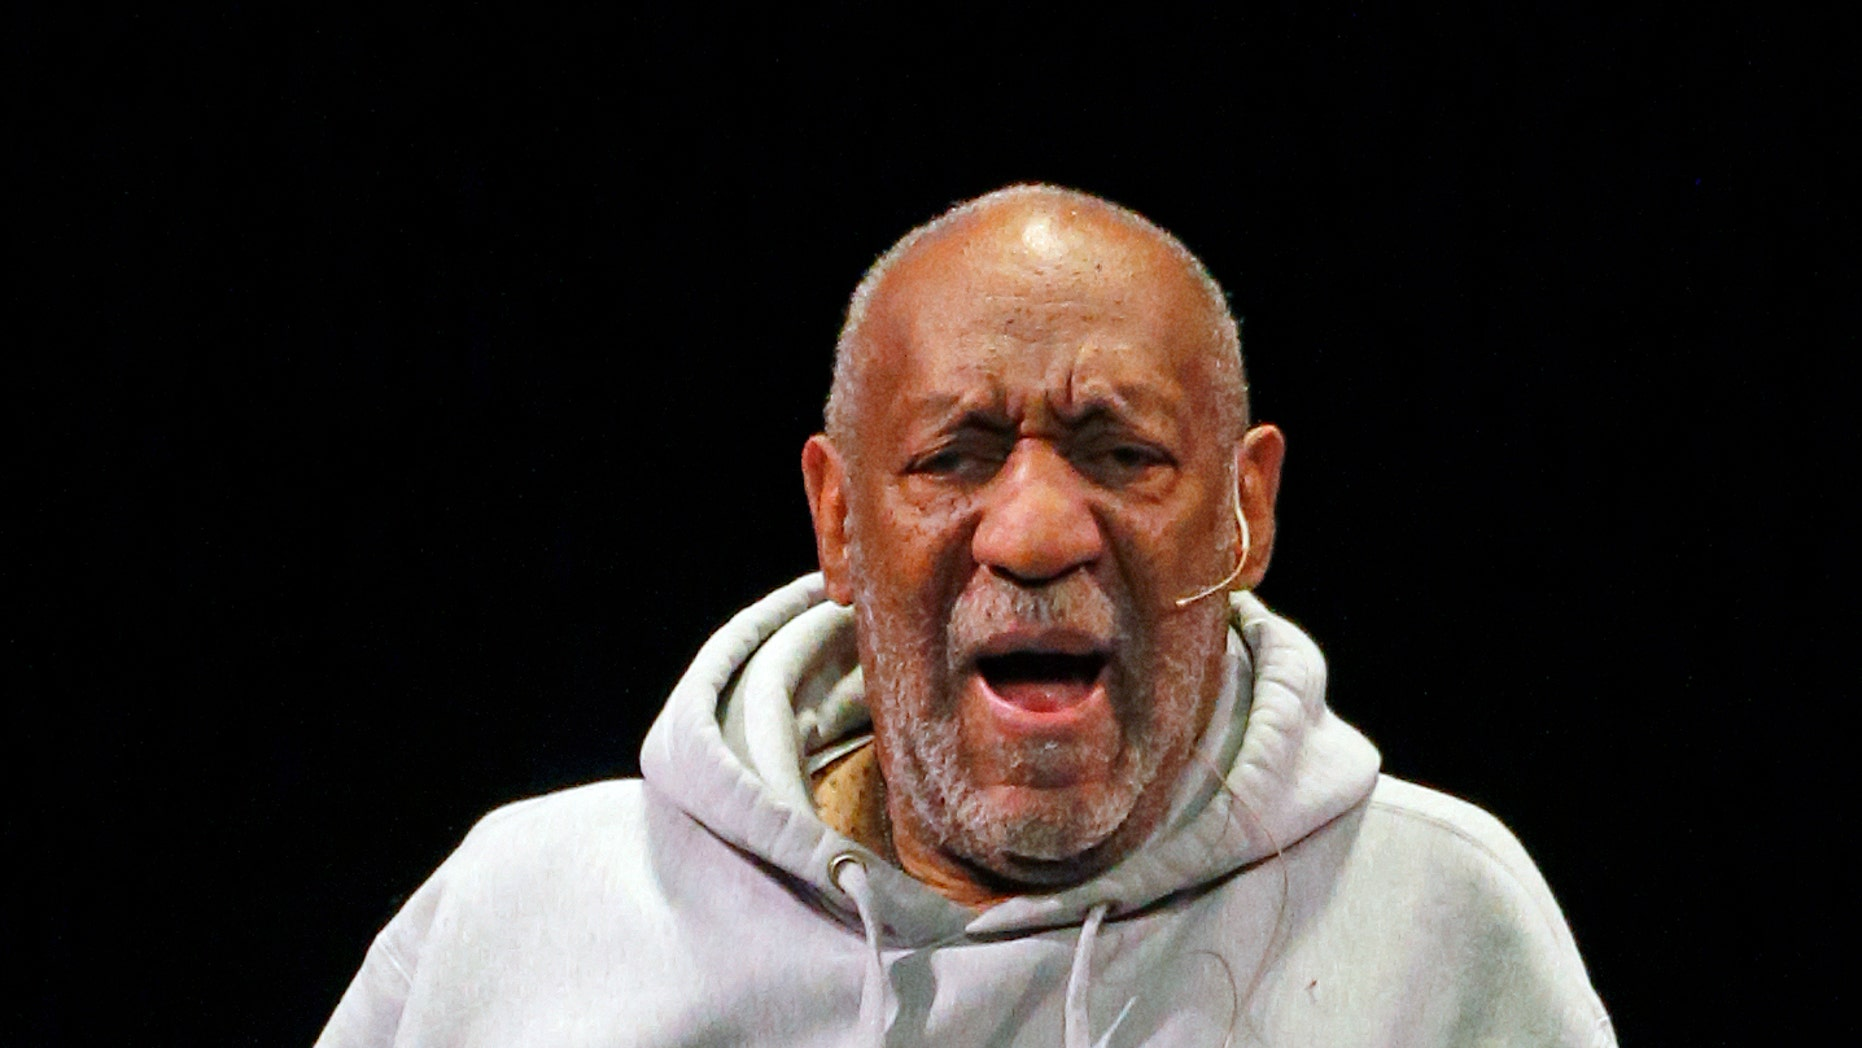 Jan 17, 2015. Comedian Bill Cosby performs at the Buell Theater in Denver.